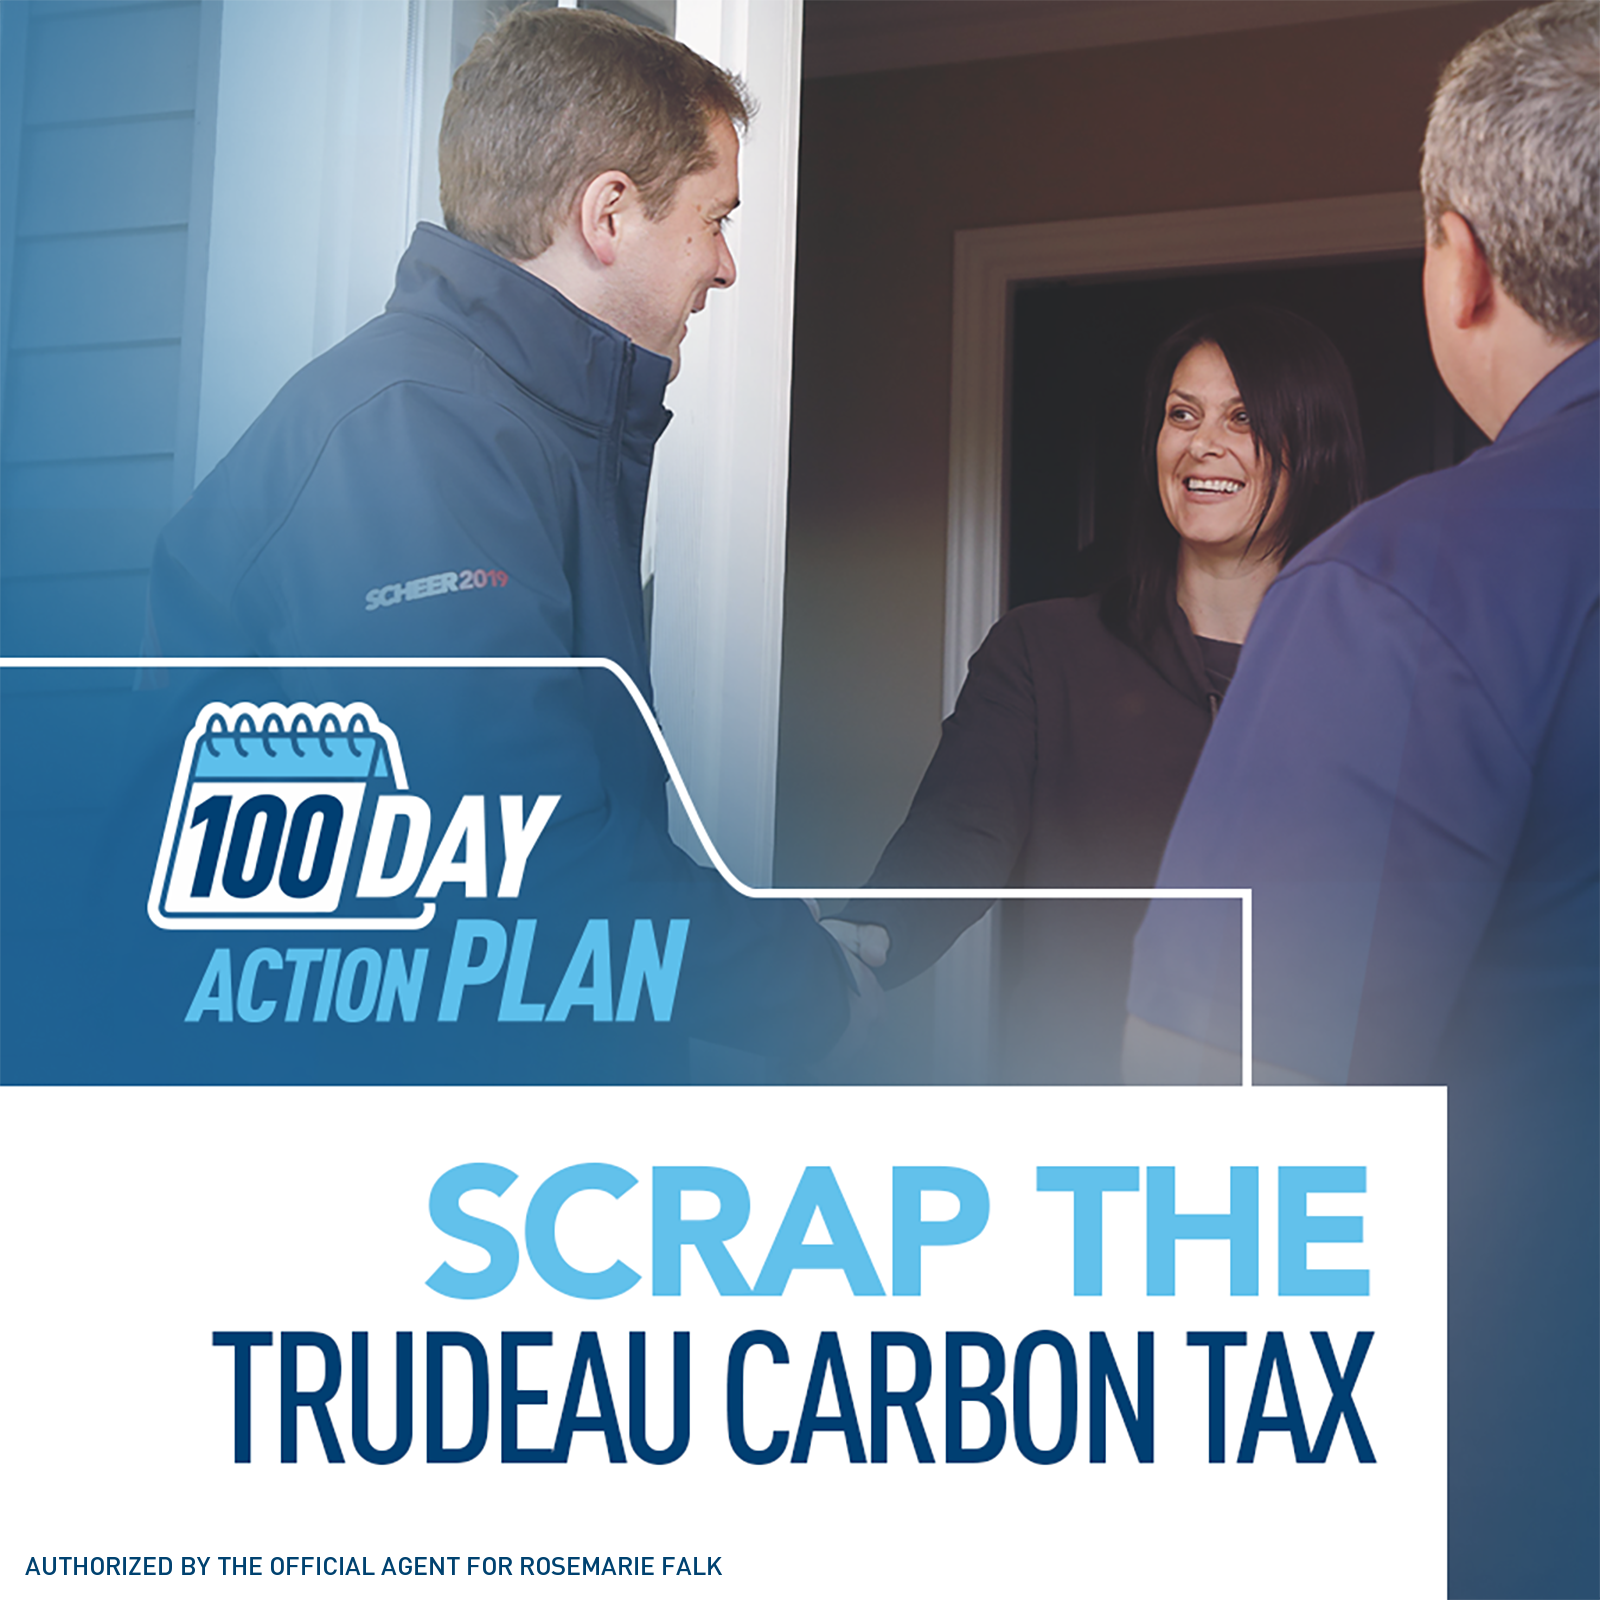 Removing the carbon tax first